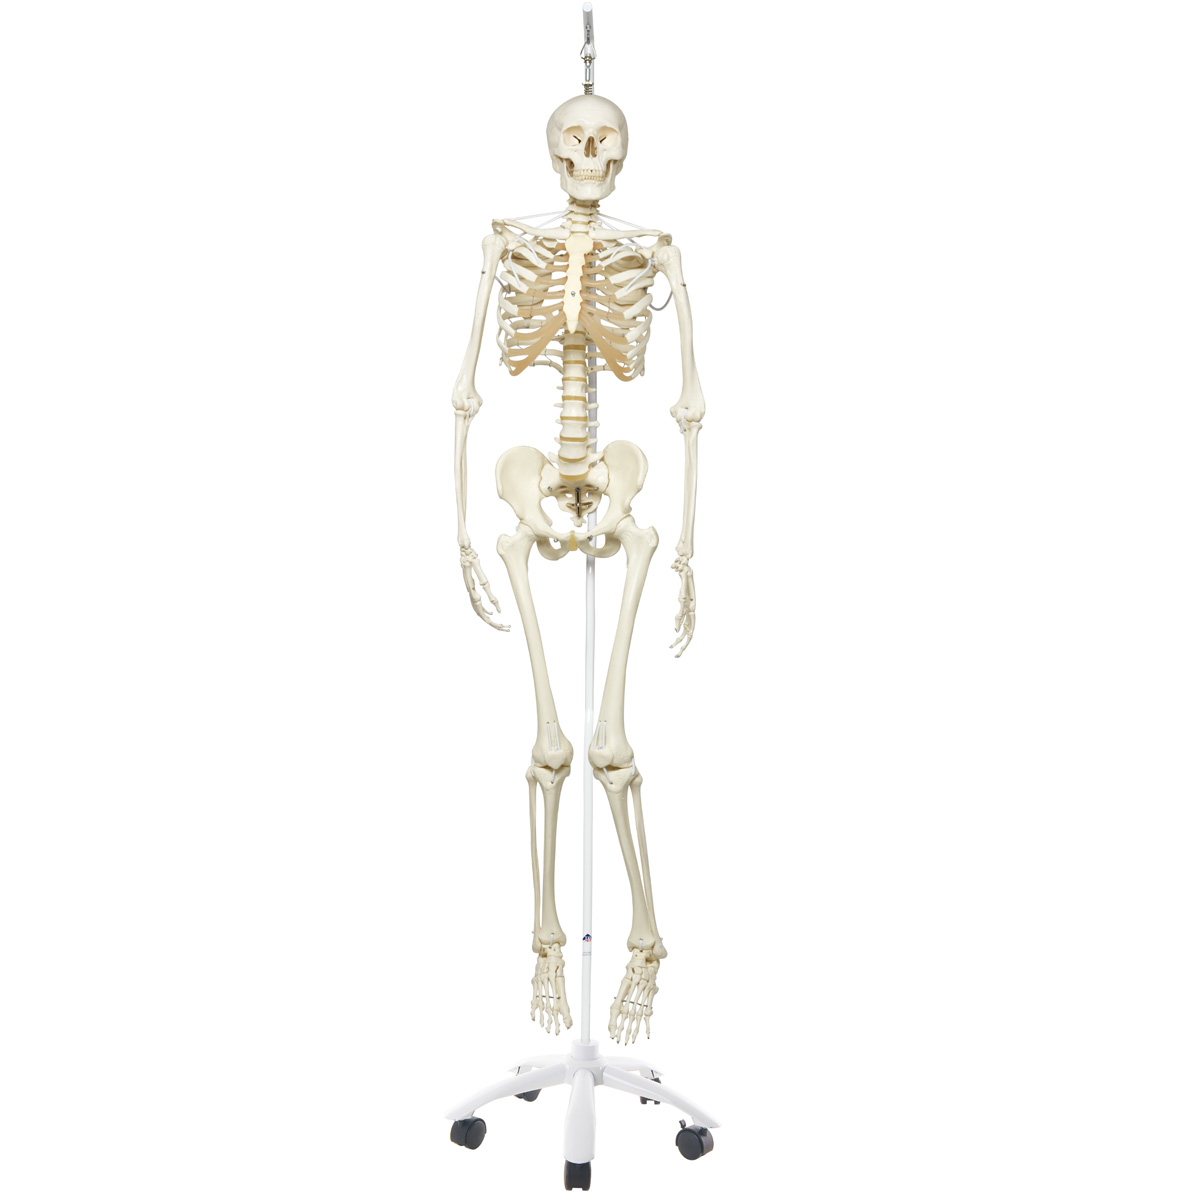 FUNCTIONAL PHYSIOLOGICAL SKELETON MODEL